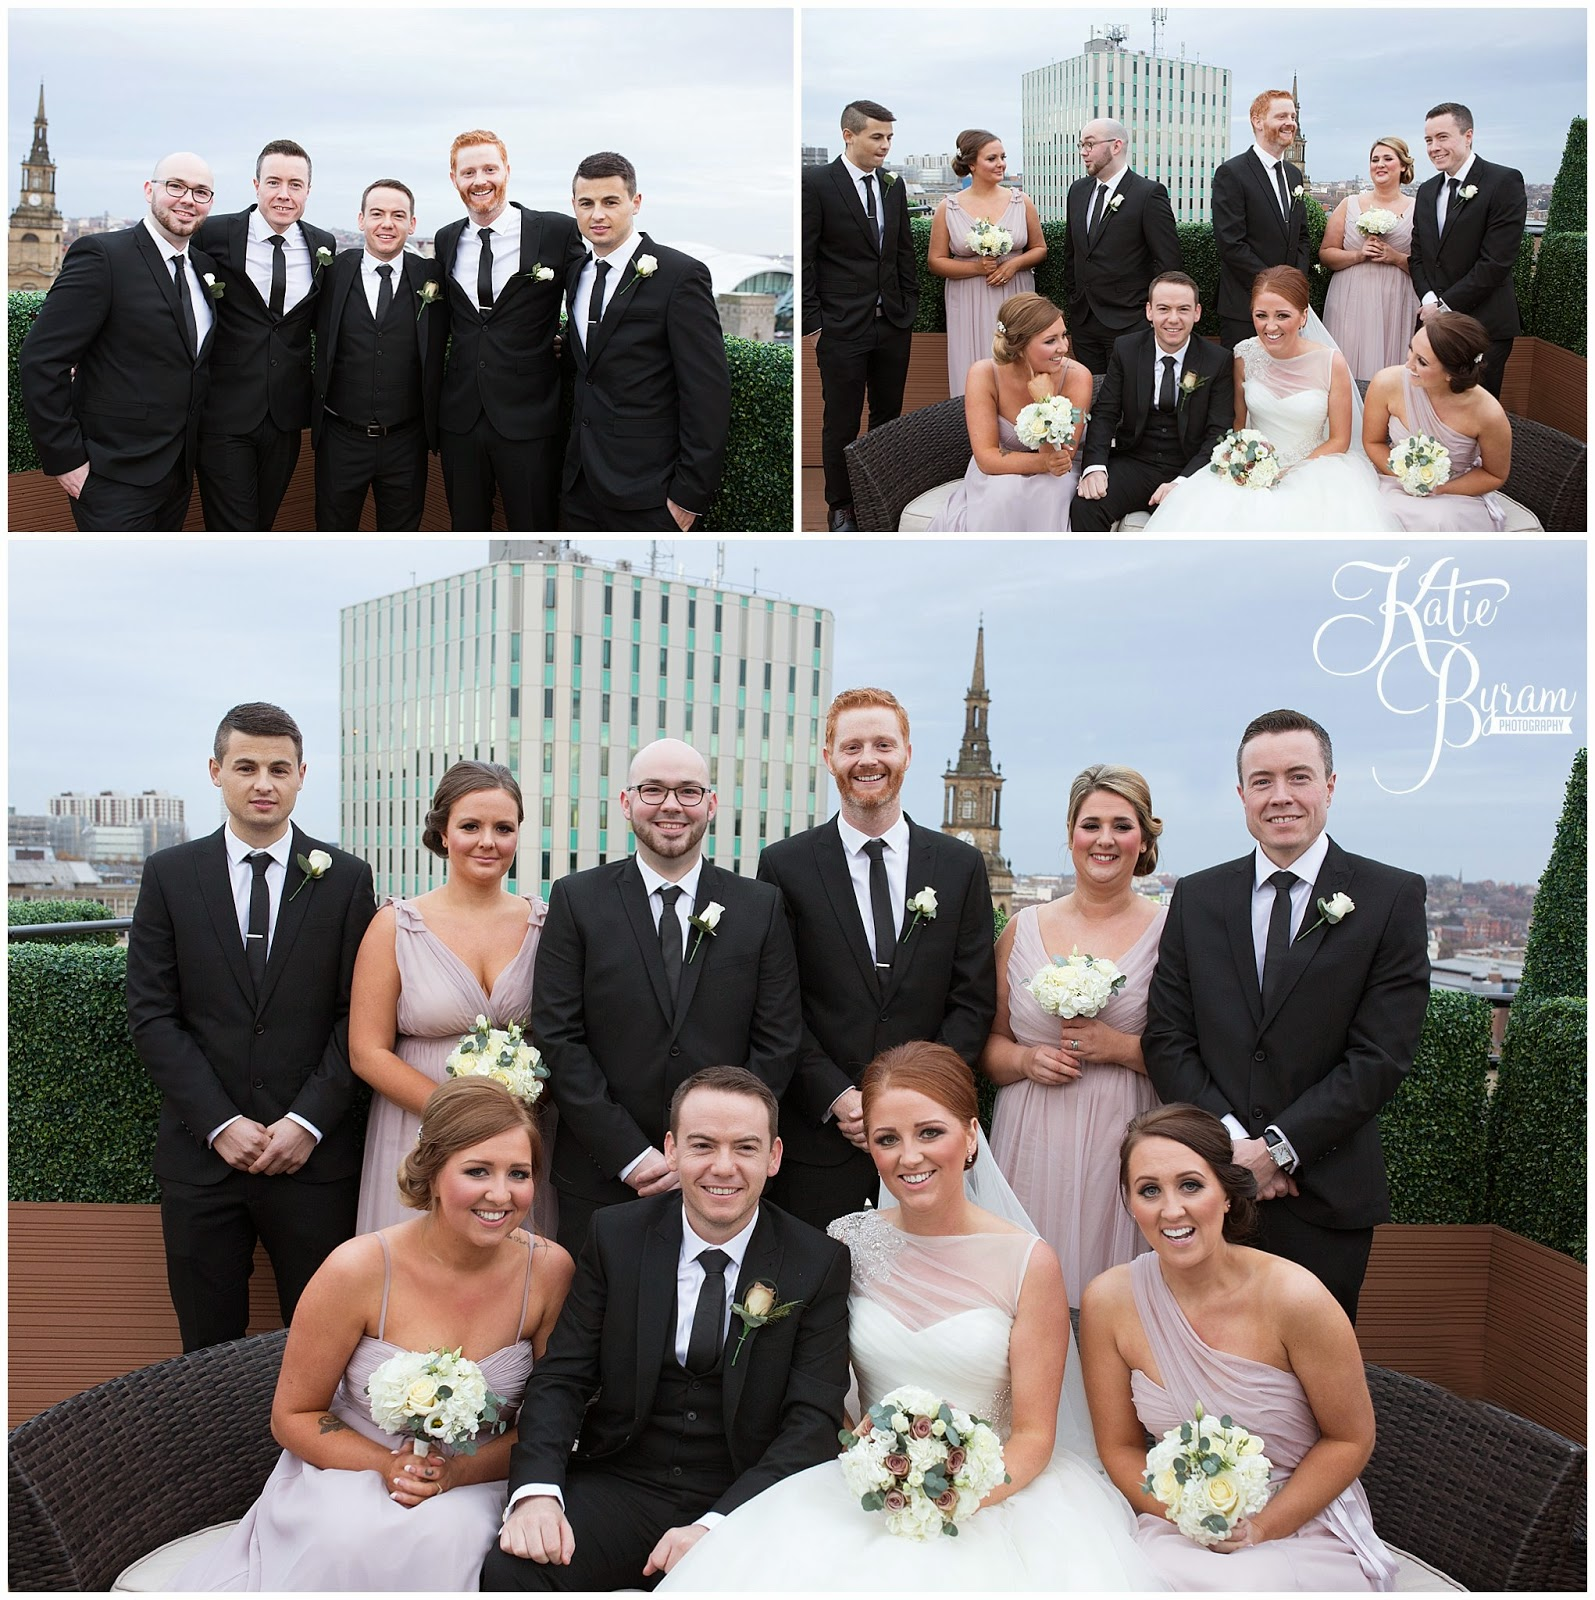 group photograph wedding, newcastle city centre wedding, the vermont hotel,vermont weddings, newcastle wedding venue, katie byram photography, hotel wedding newcastle, quayside, nighttime wedding photographs